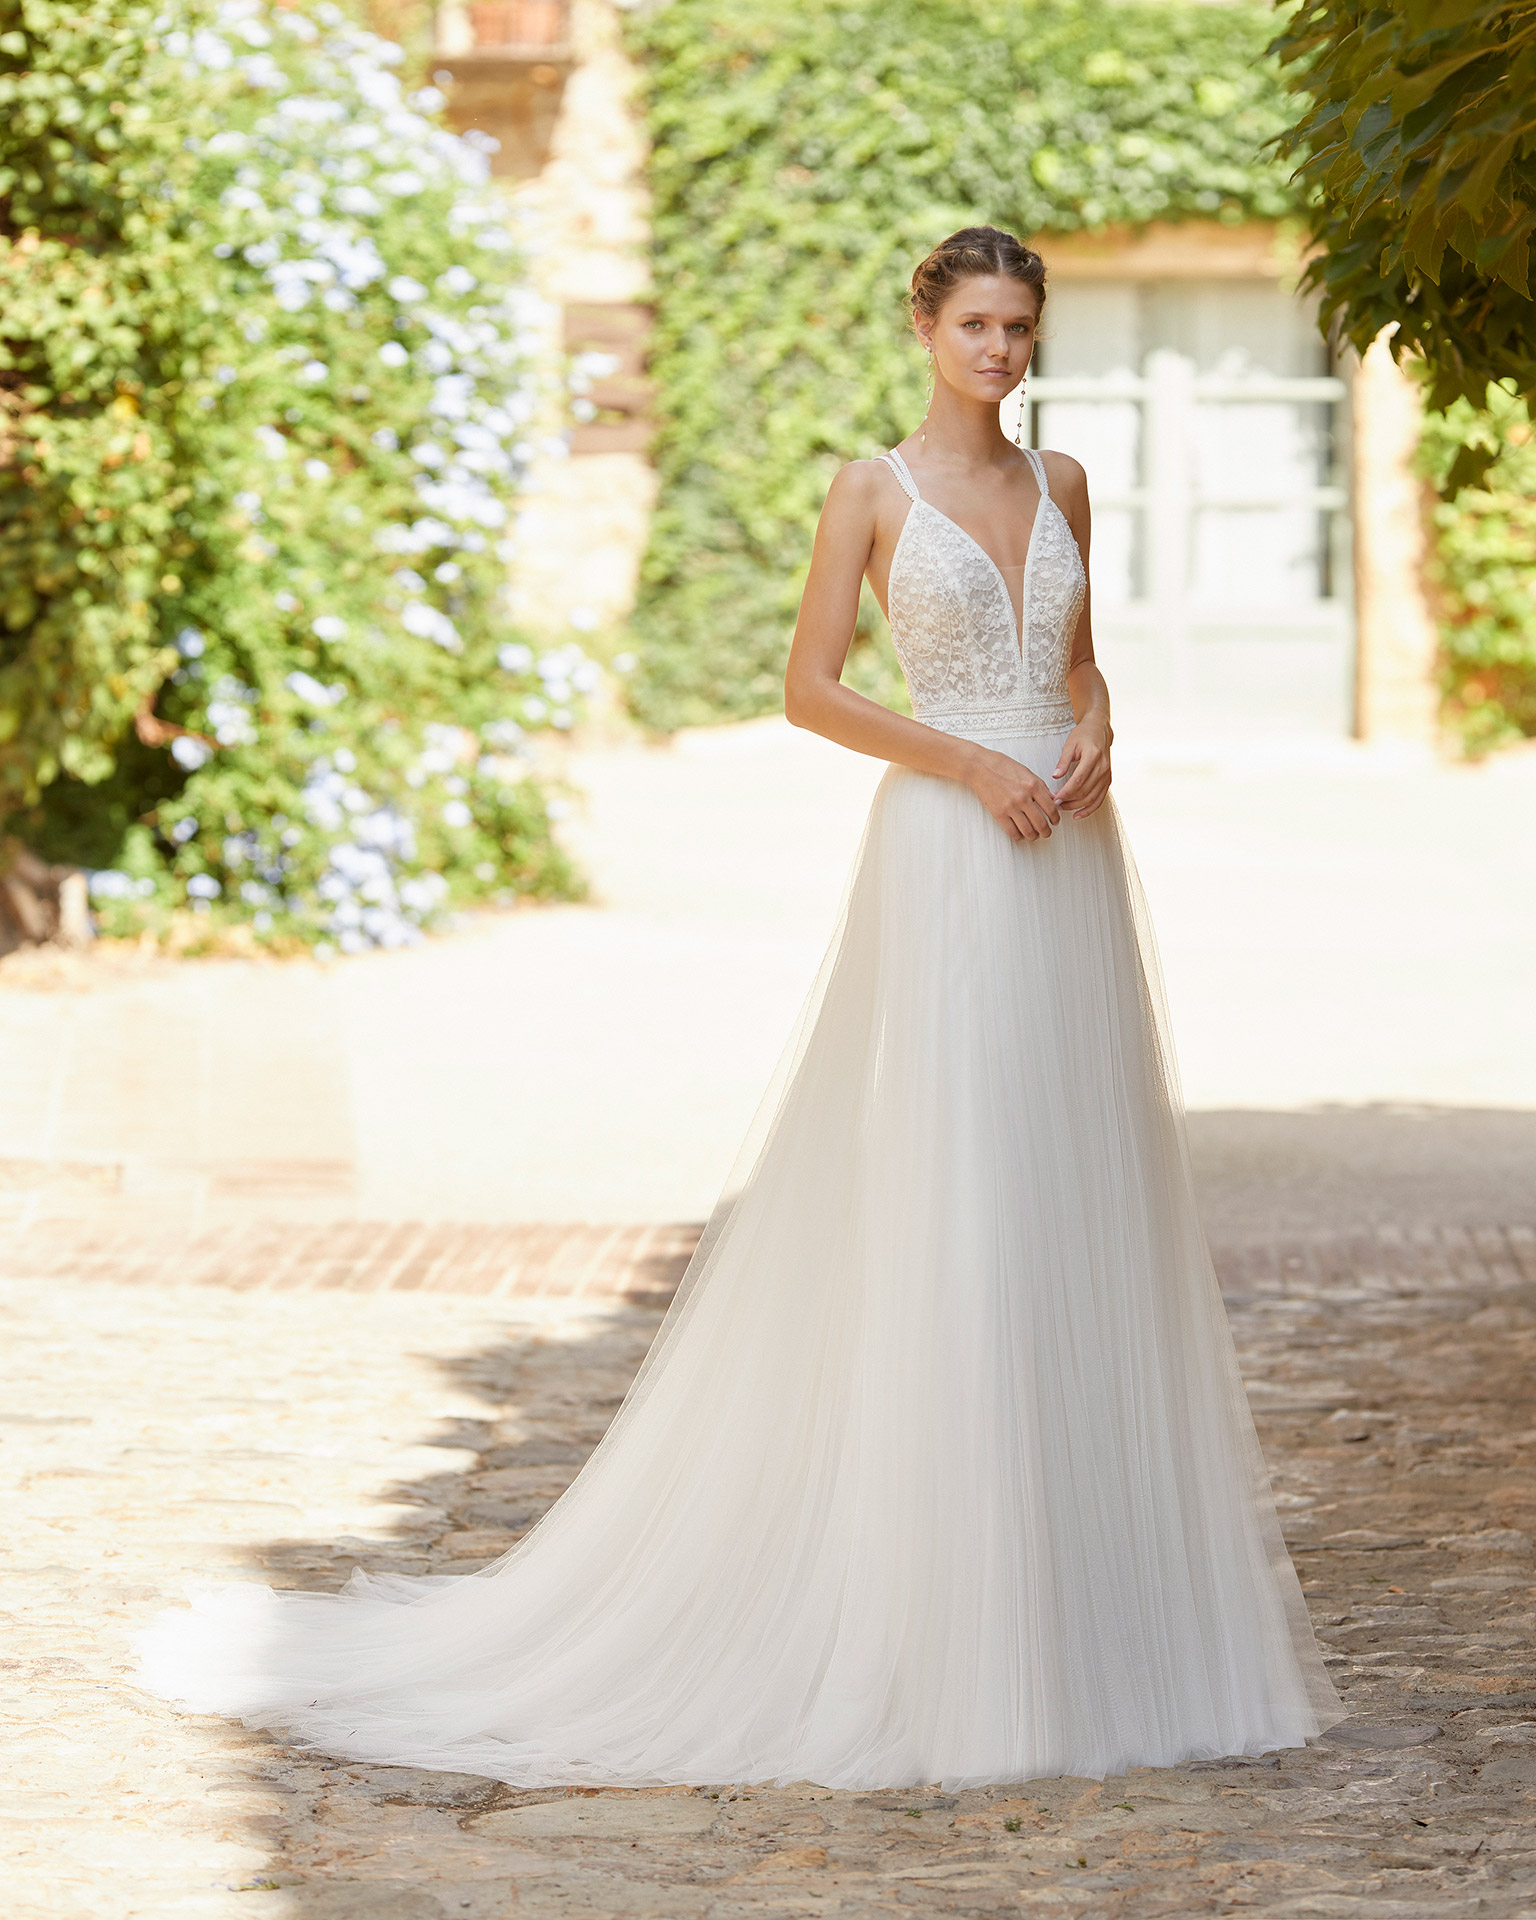 Romantic wedding dress with a lace bodice and beadwork; V-neckline and back with crossed shoulder straps. Alma Novia model in tulle. 2022 ALMANOVIA Collection.